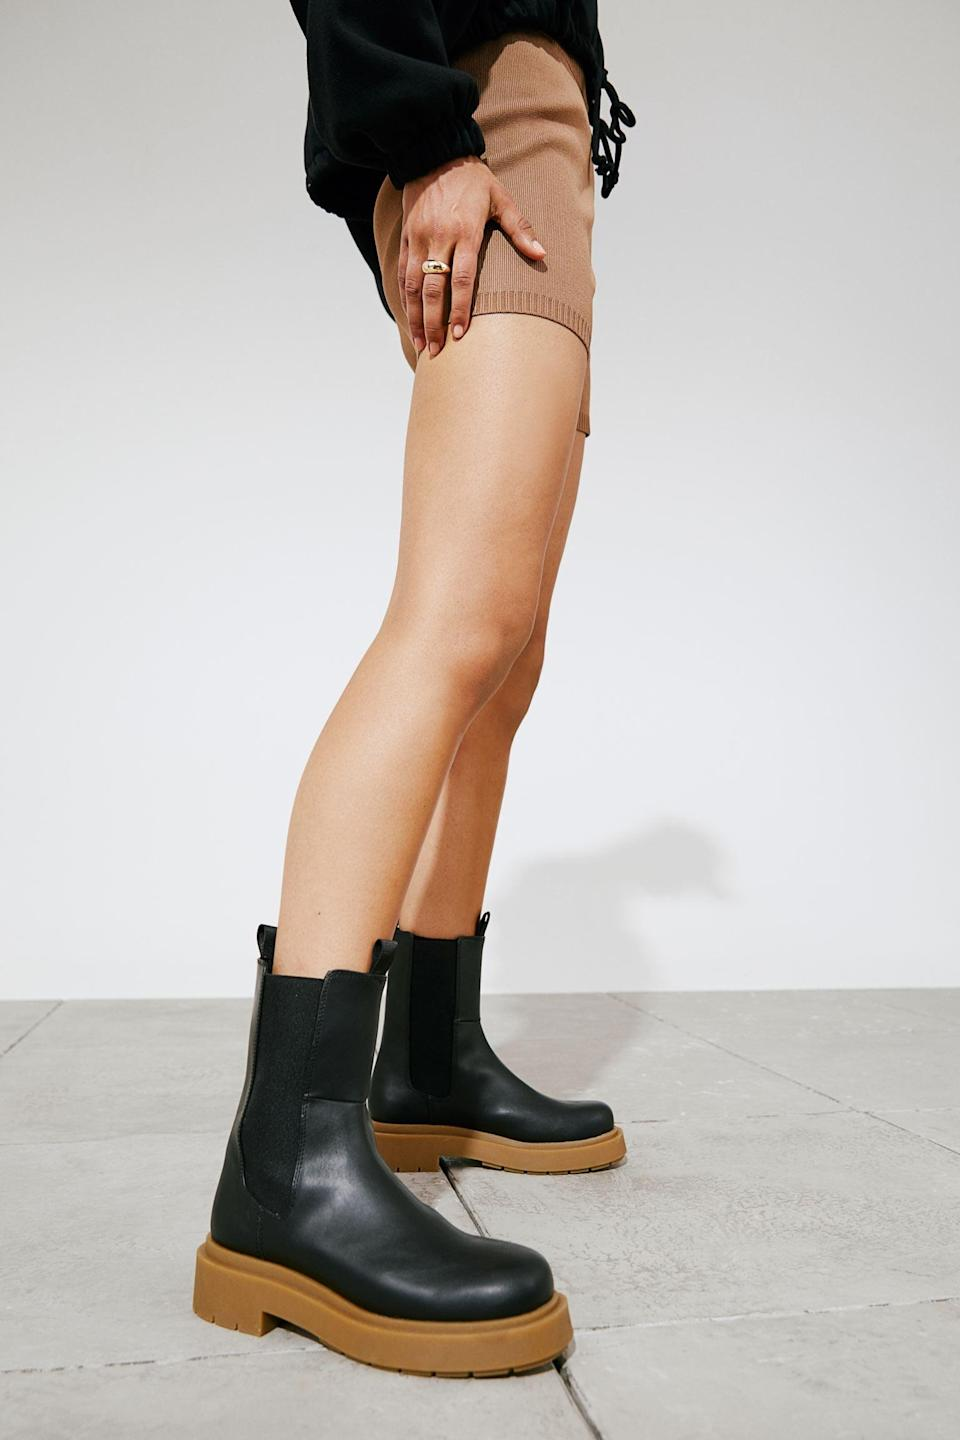 <p>You'll get a ton of wear out of these <span>Platform Chelsea-style Boots</span> ($40, originally $50), so you won't regret investing in them. We like the color contrast, which makes the style even cooler.</p>